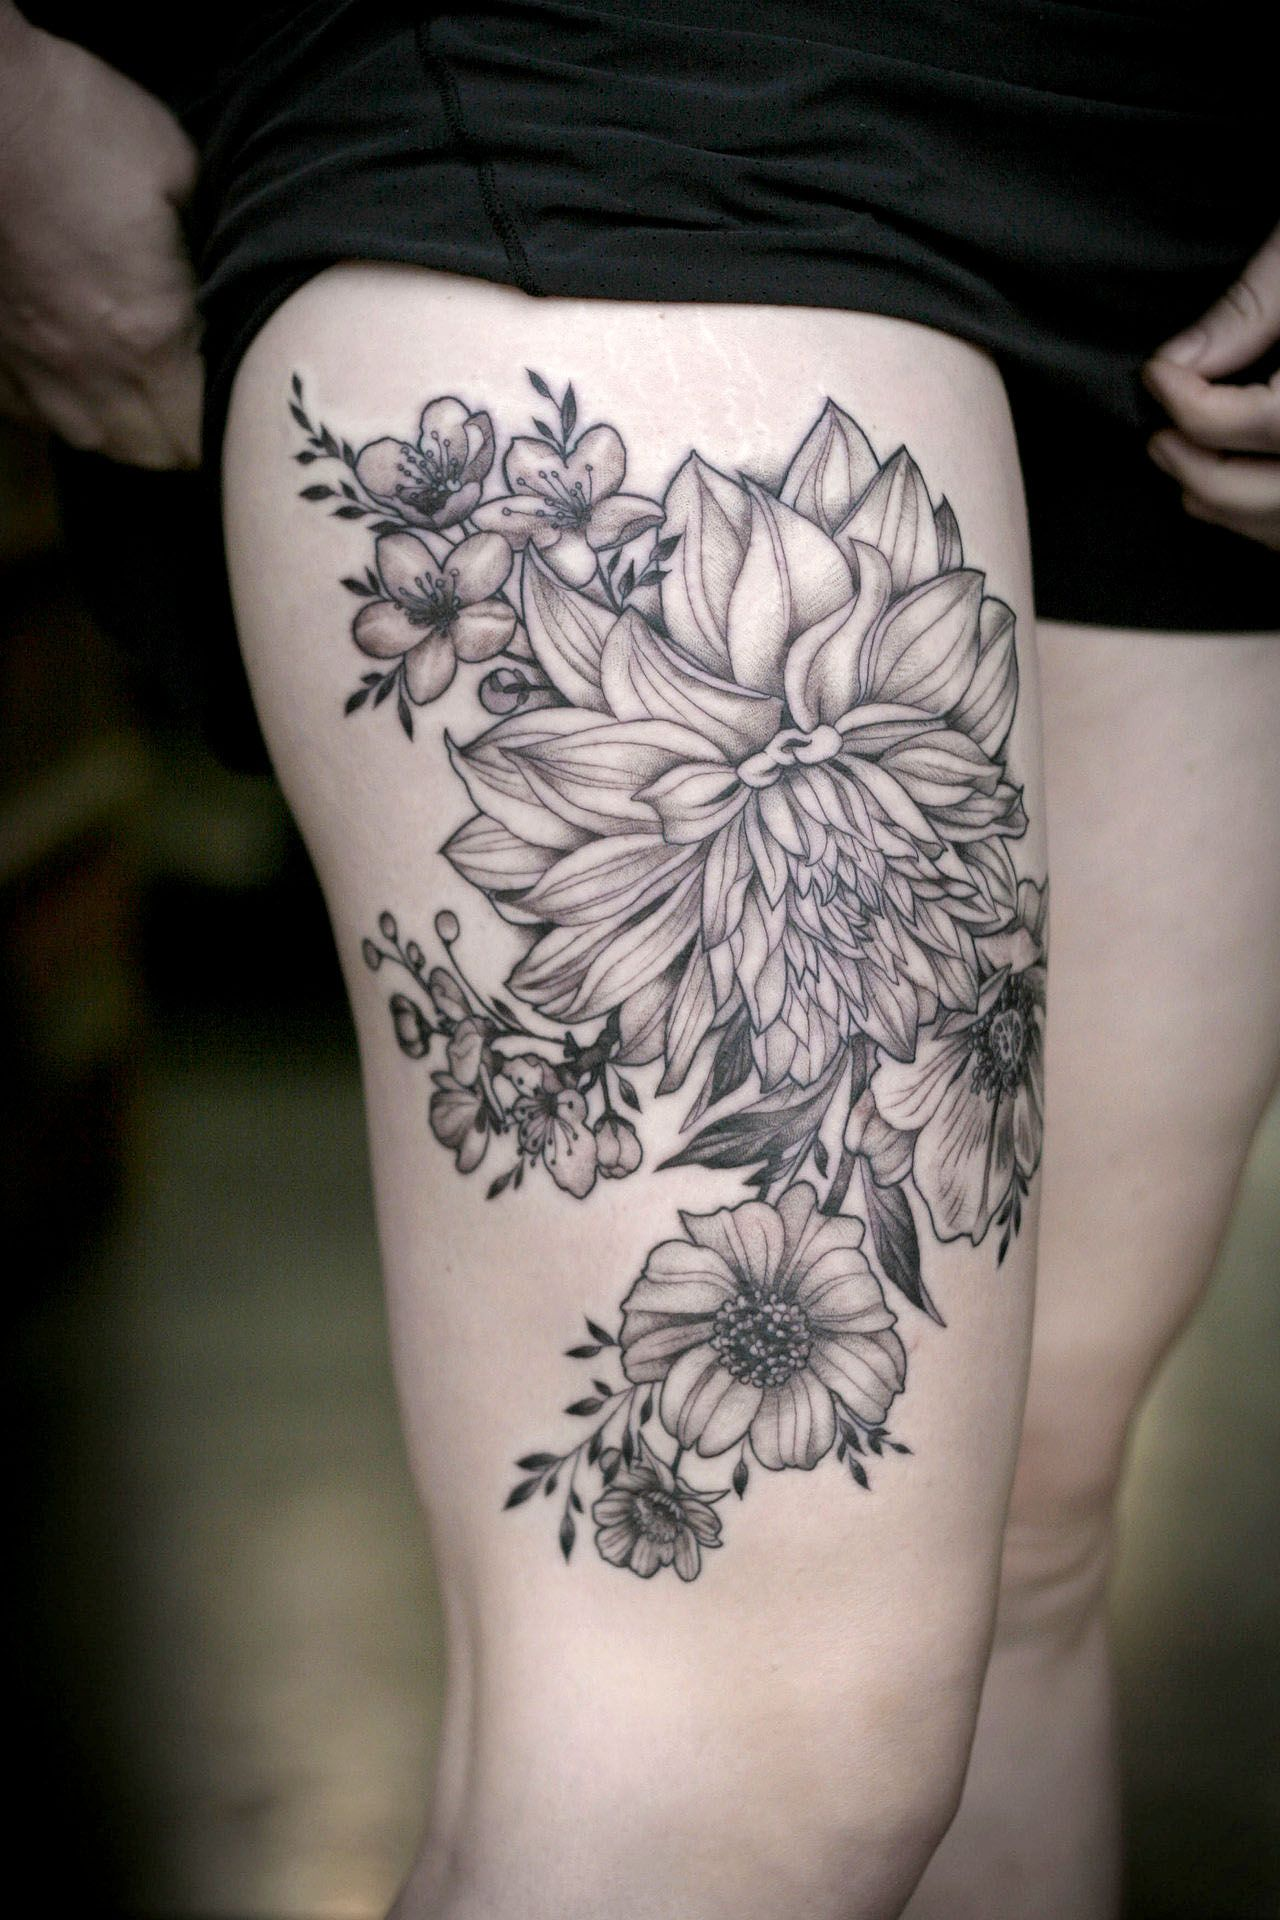 Dahlias And Garden Flowers By Alice Kendall At Wonderland Tattoo In